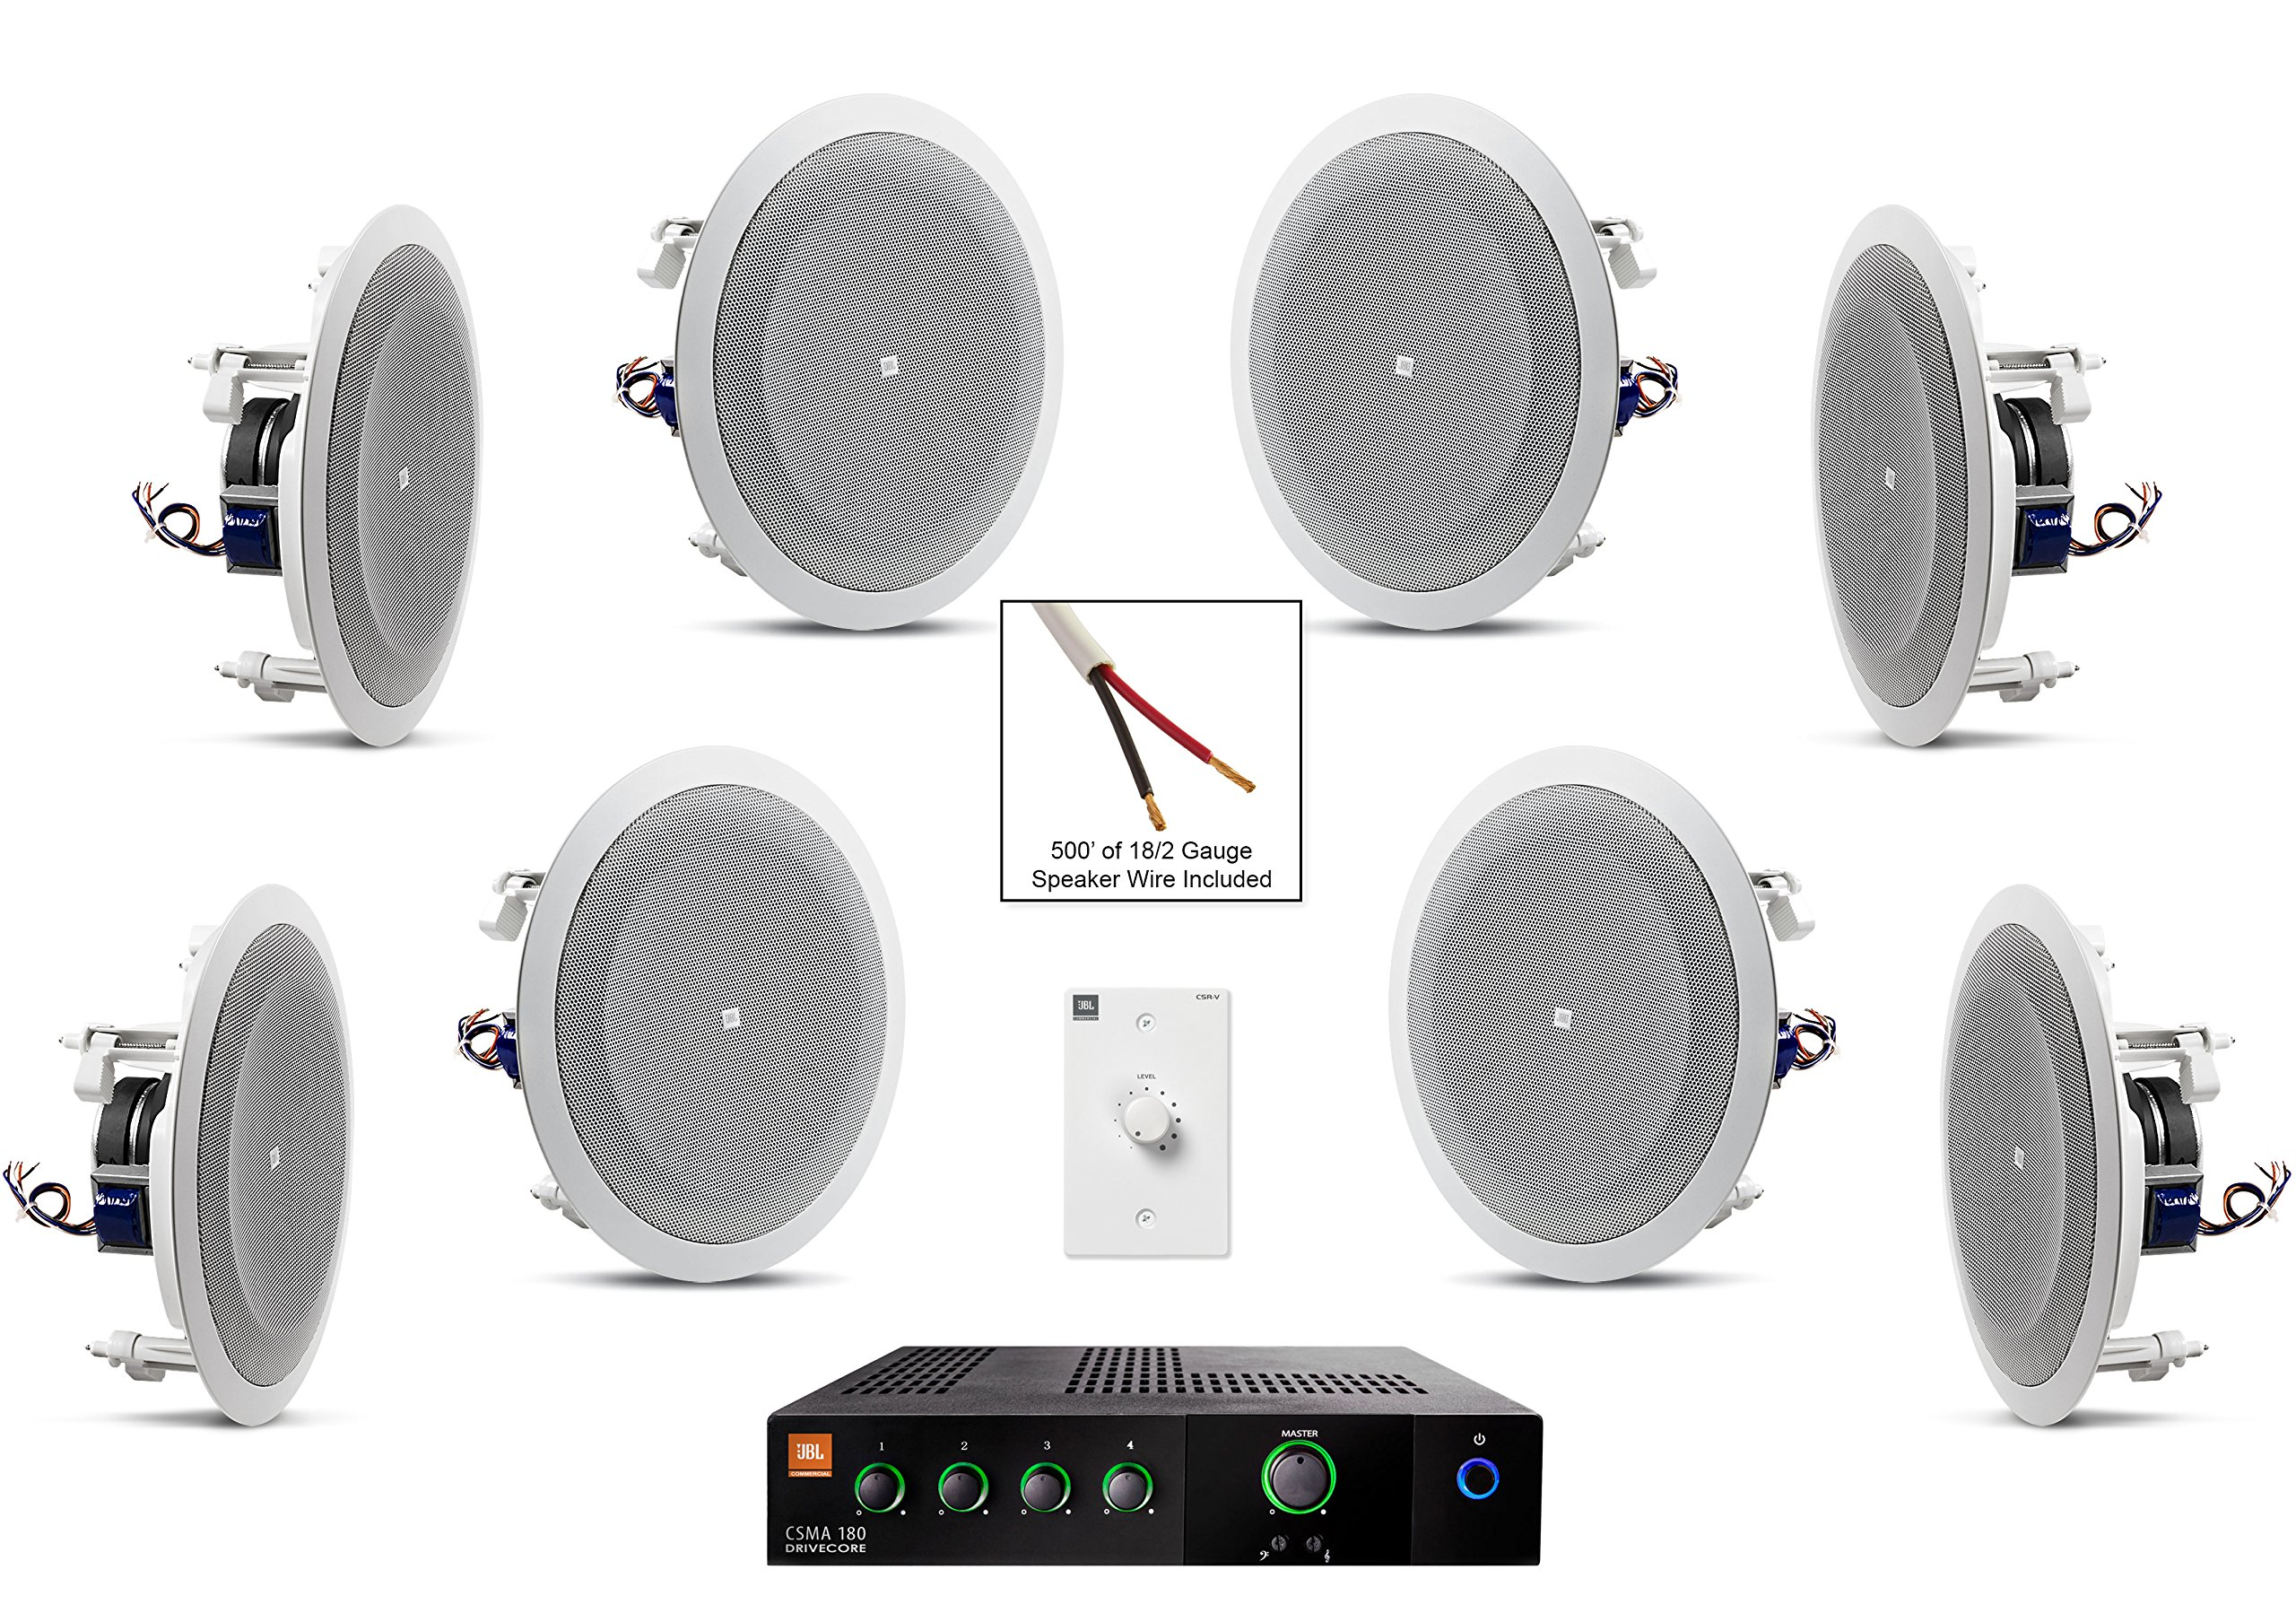 JBL 8128 In-Ceiling Loudspeaker Bundle with JBL CSMA 180 Mixer Amplifier and Accessories - Restaurant Sound System (35 Items)